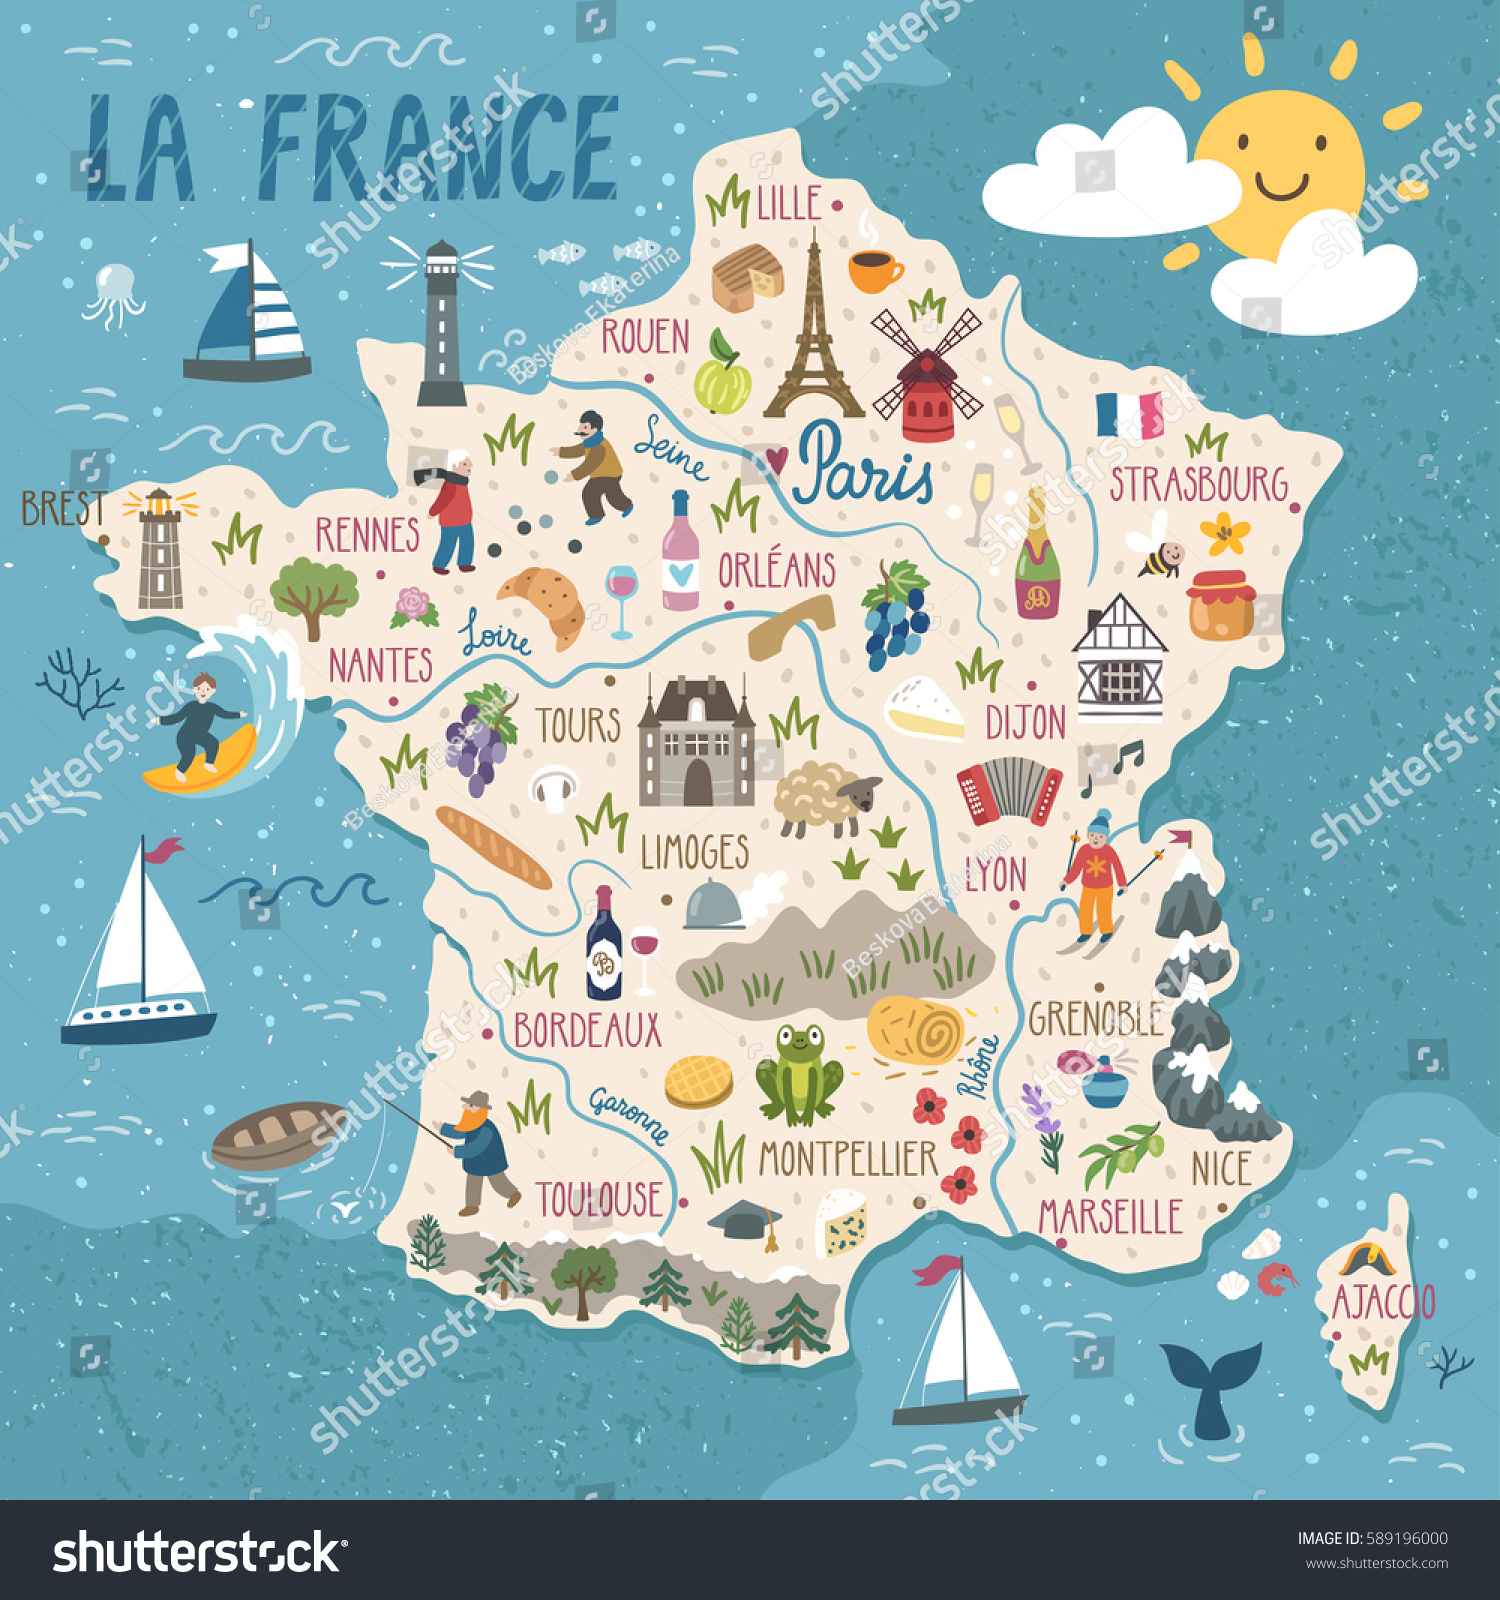 Travel Map Of France.Royalty Free Vector Stylized Map Of France Travel 589196000 Stock